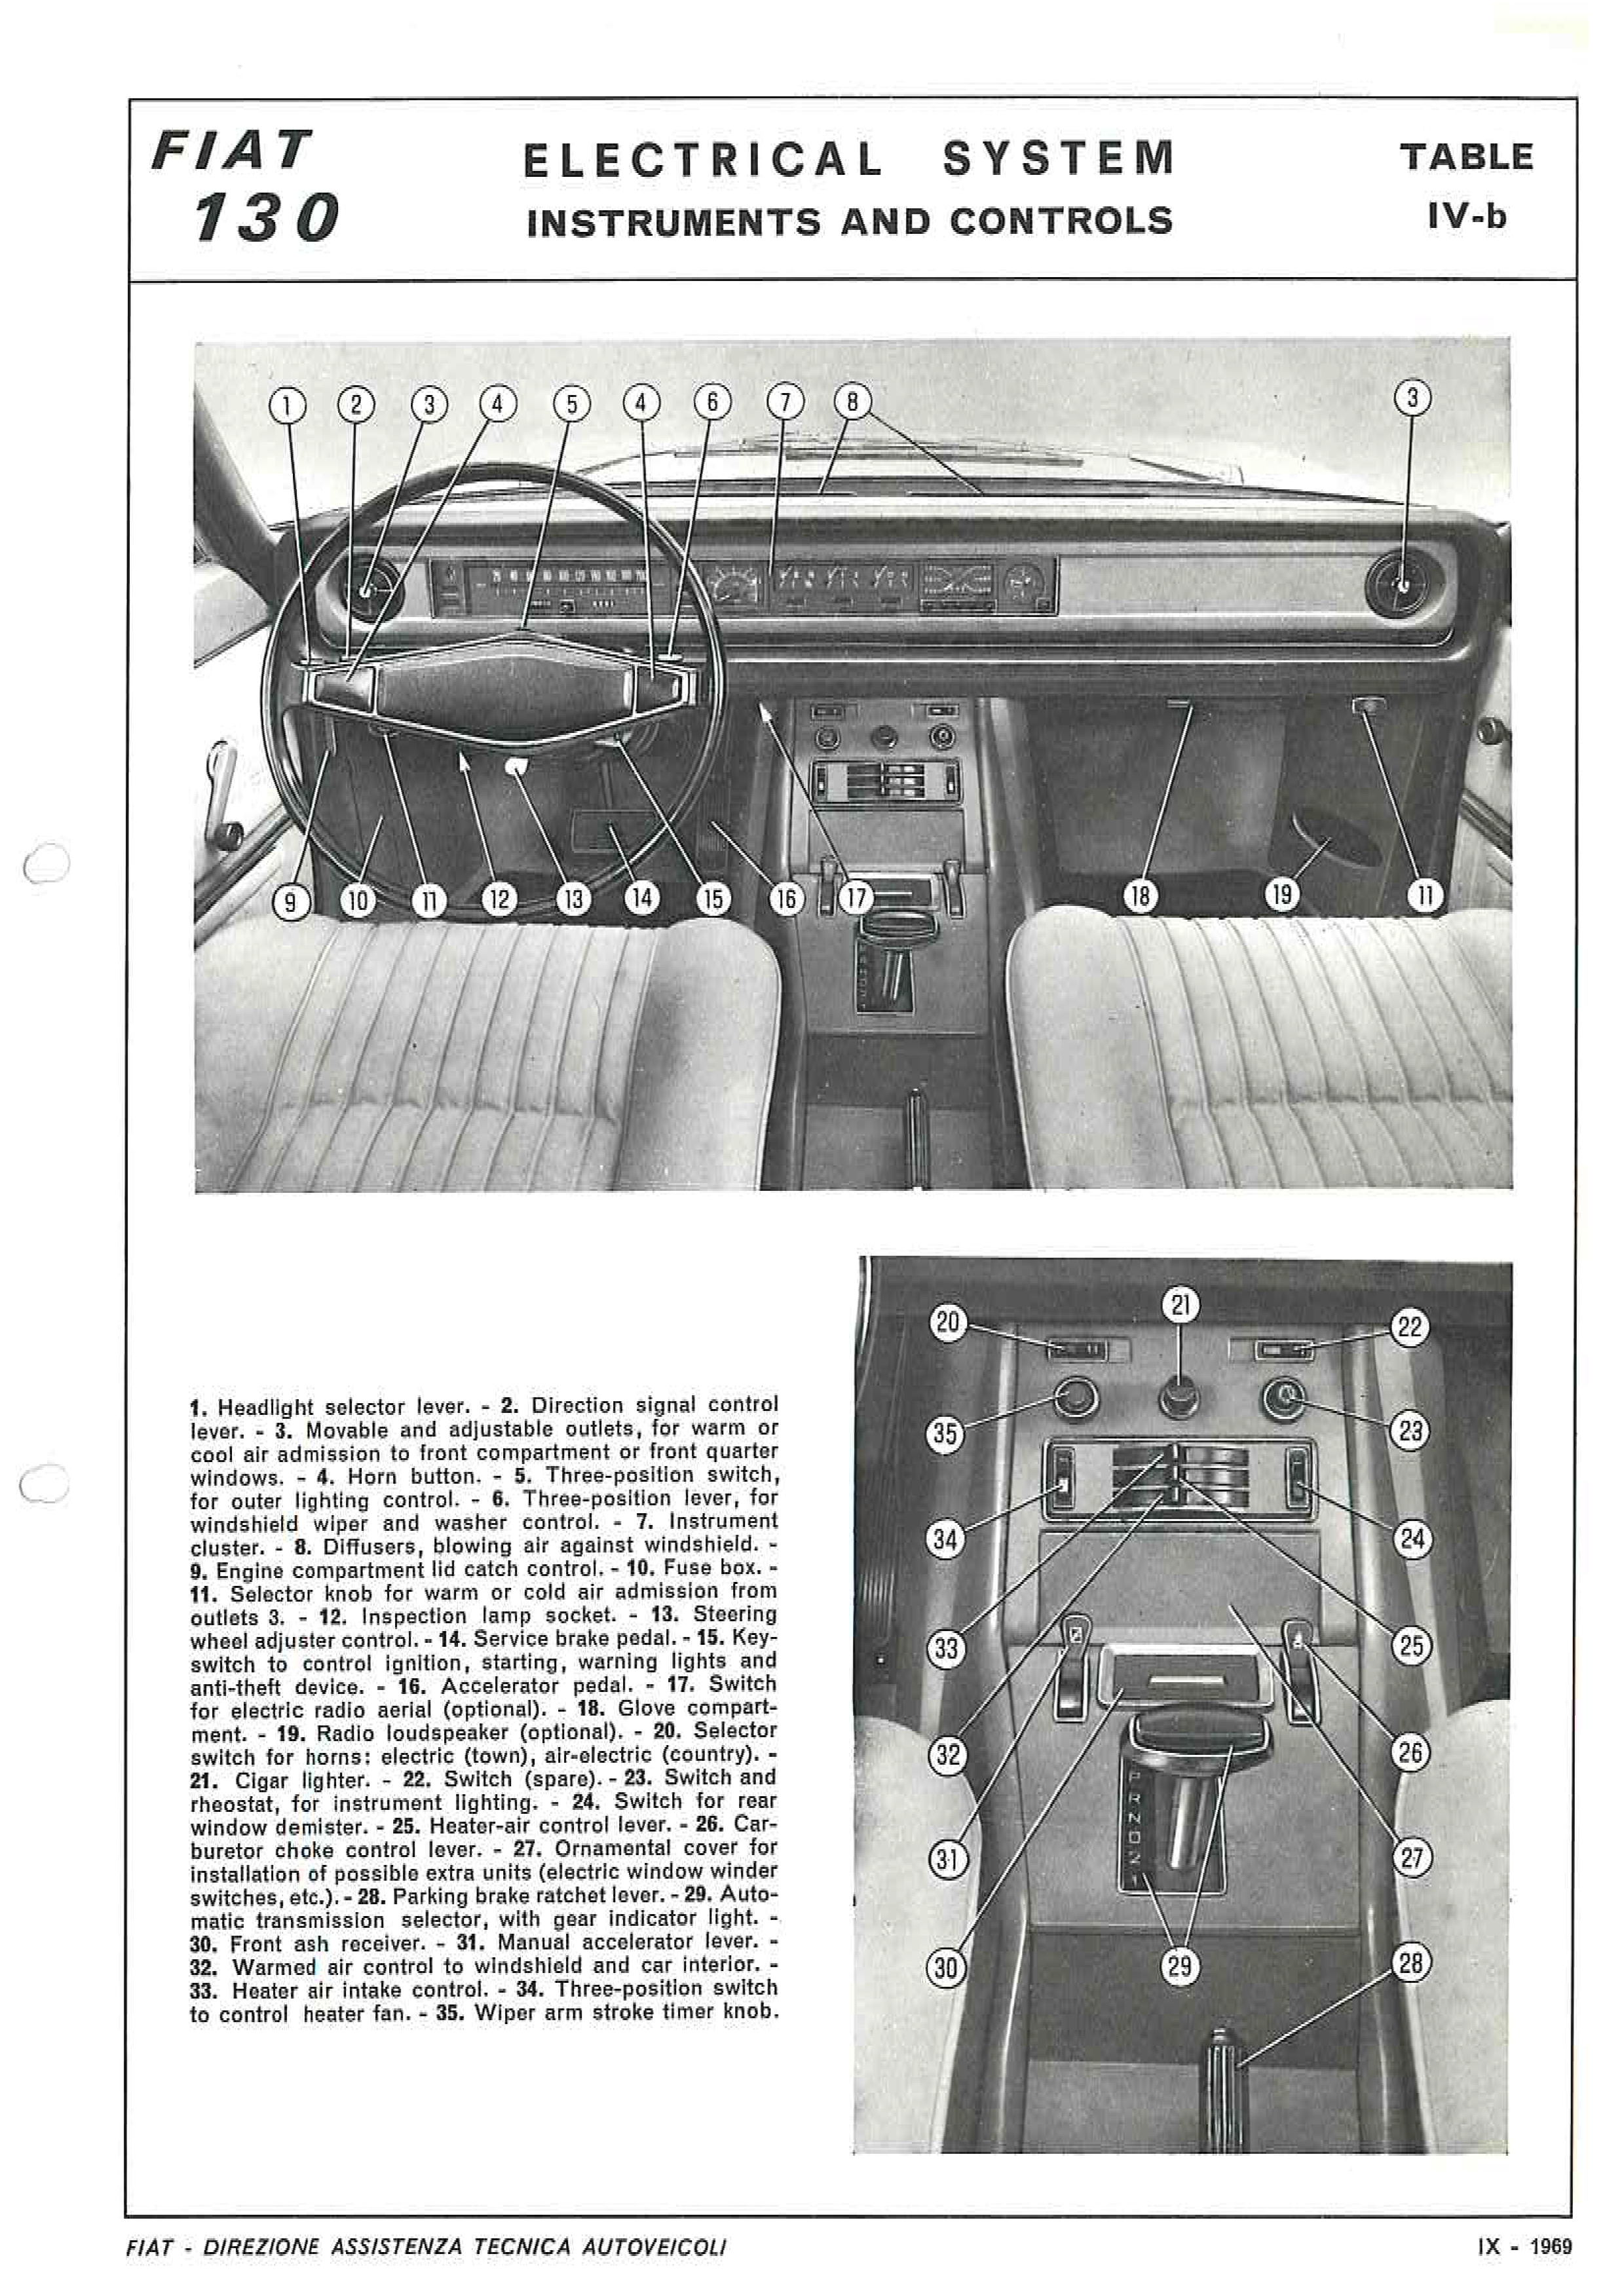 Electrical system Fiat 130